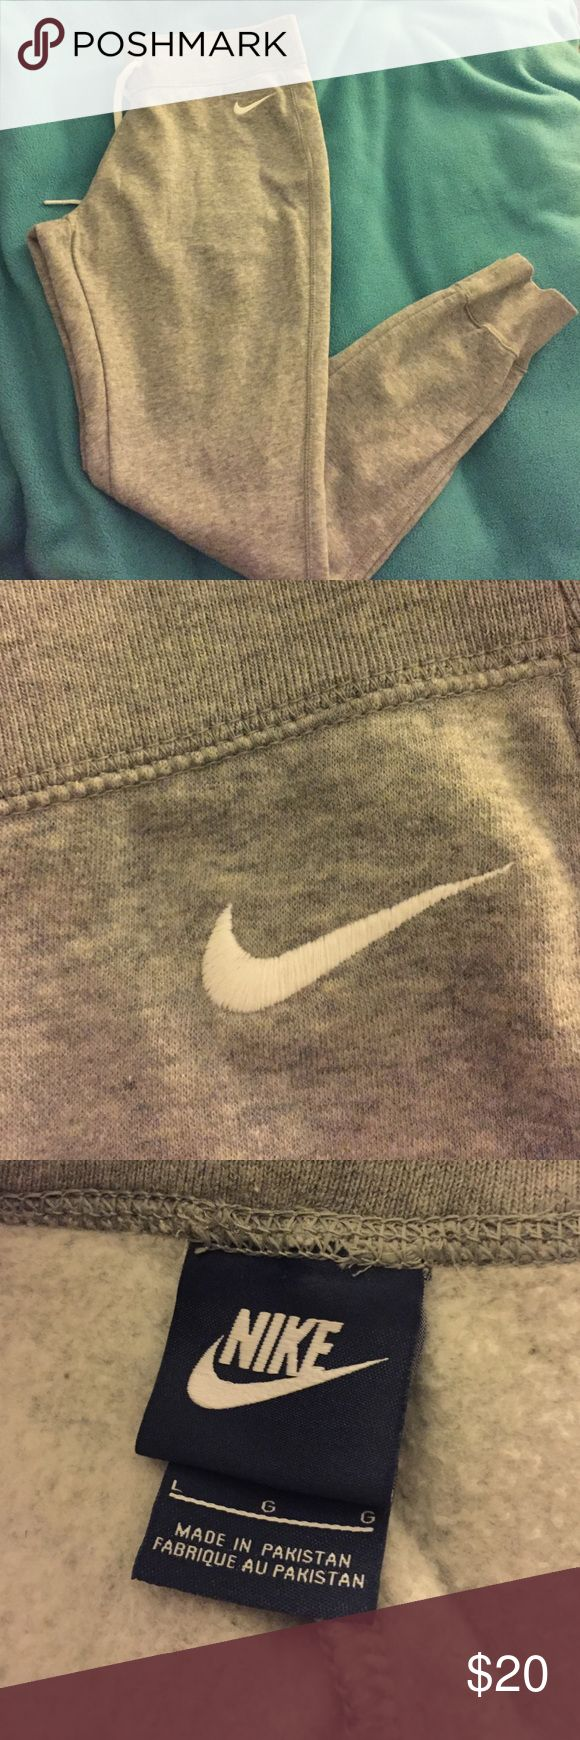 Nike slim fit Jogger sweats Grey Nike slim fit Jogger sweats, never worn just tried on, perfect condition, can fit S-L depending on how you want them to fit, Nike Pants Track Pants & Joggers